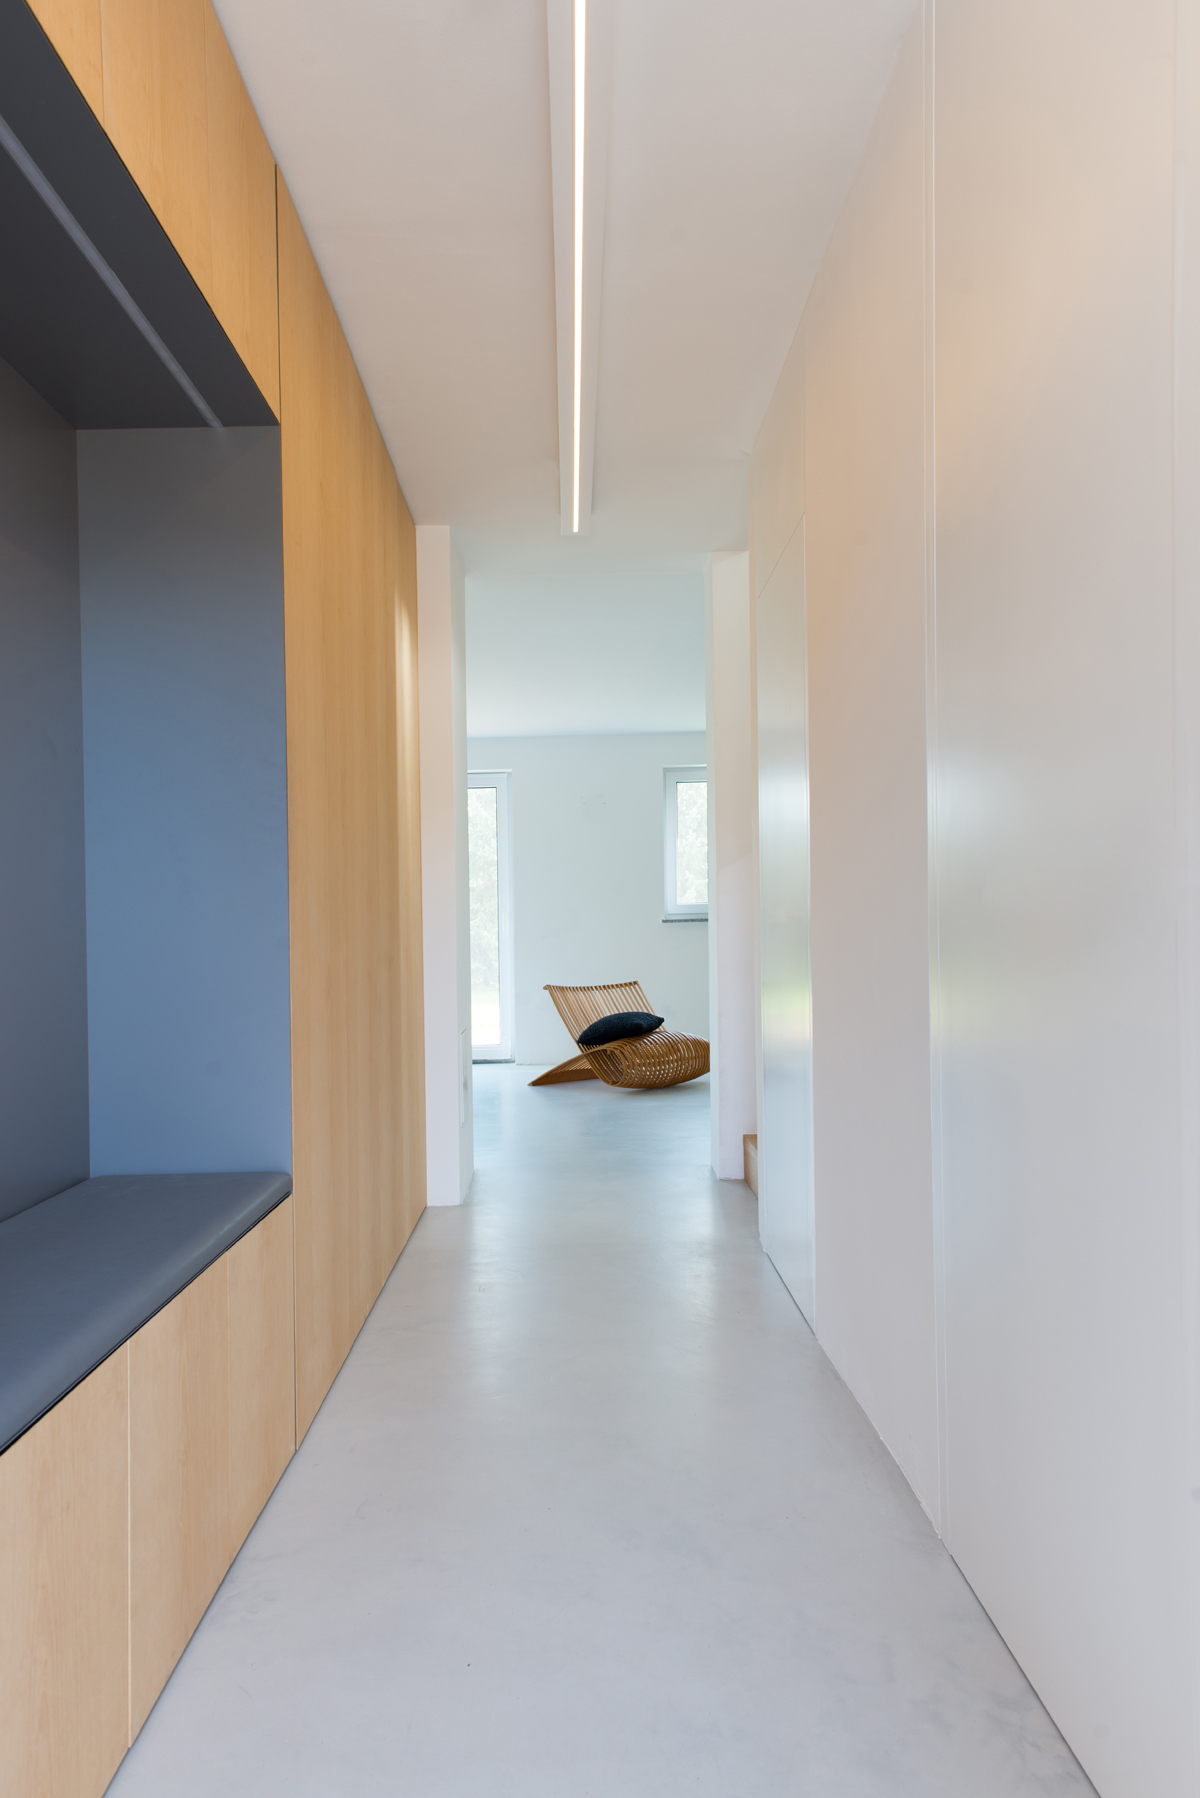 SUBURBAN APARTMENT, Dub (SI), Completed, 2015